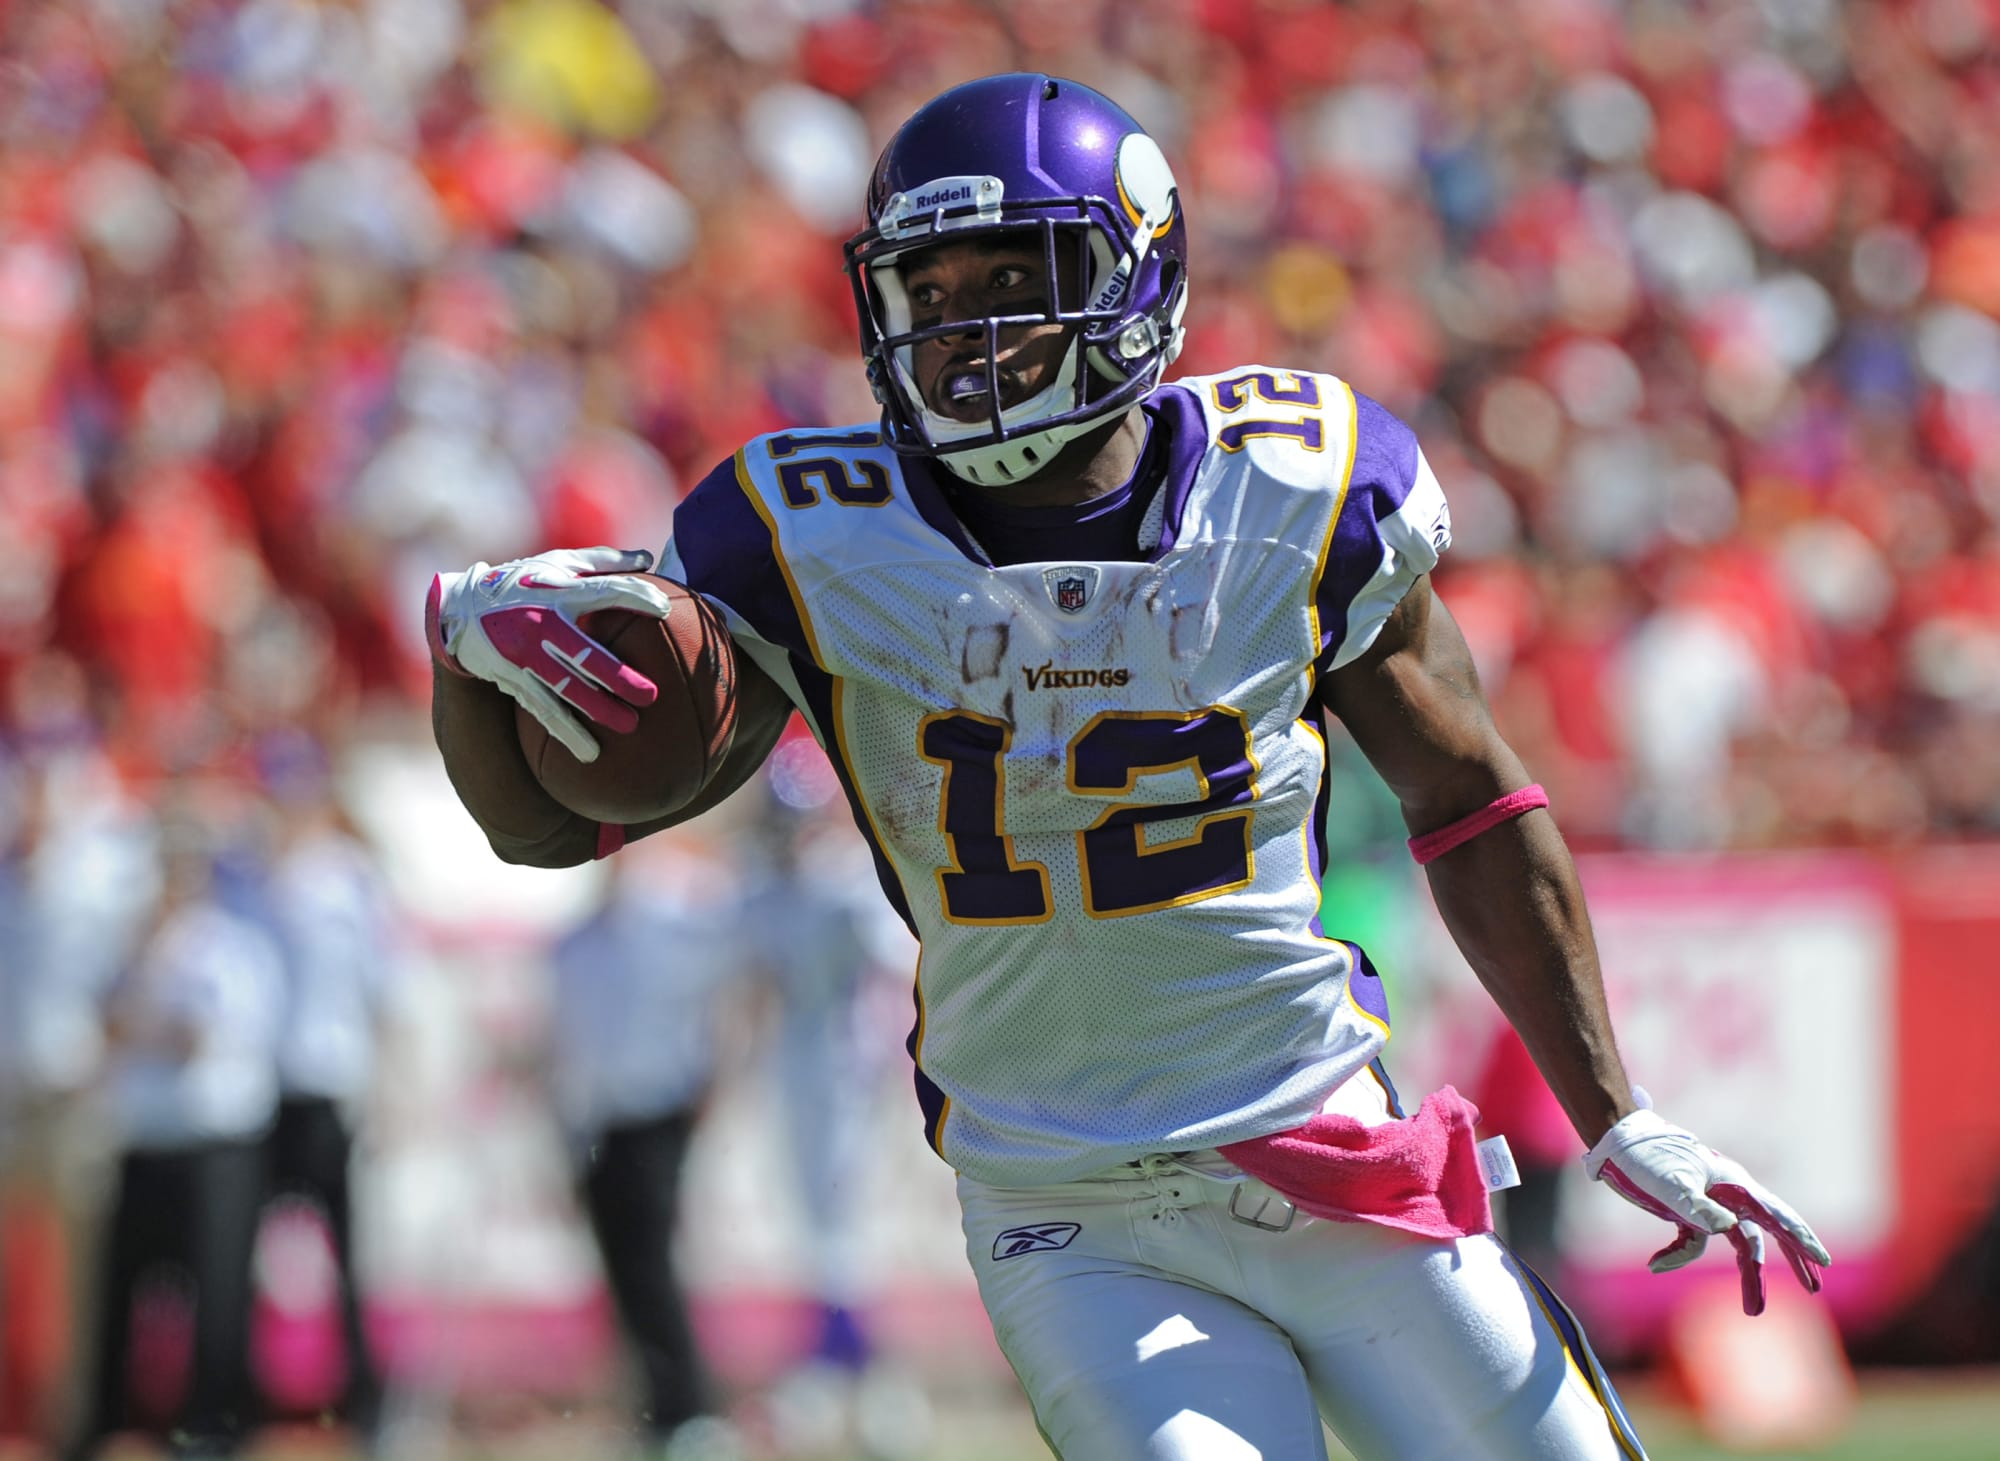 The legend of Percy Harvin will never stop growing